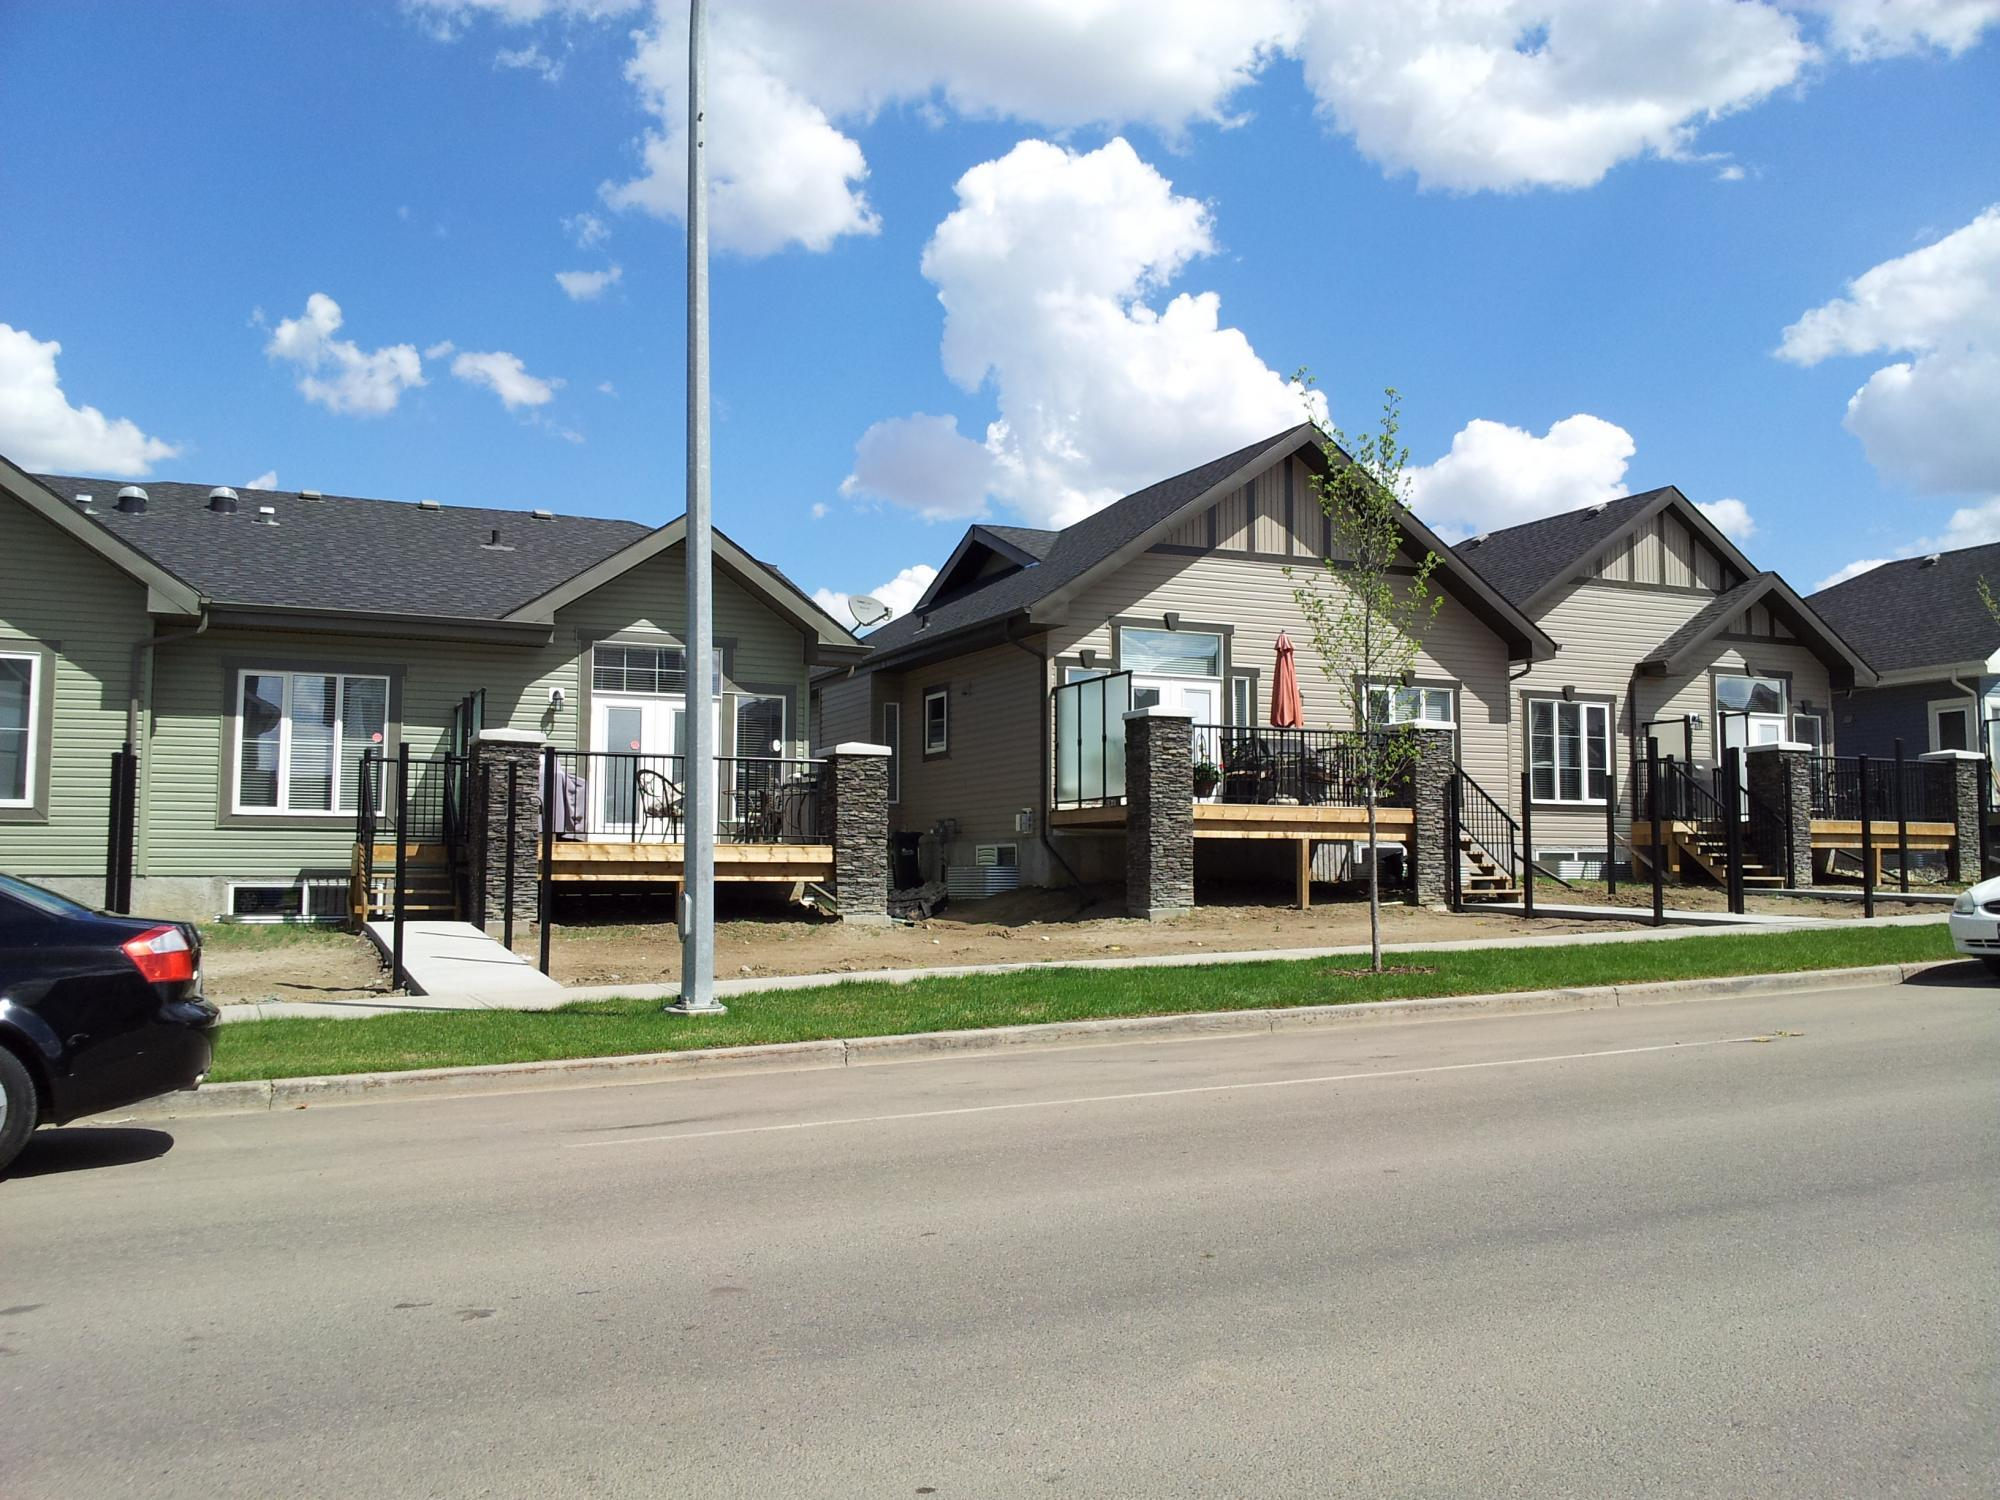 Bungalow Condos For Sale In Sherwood Park